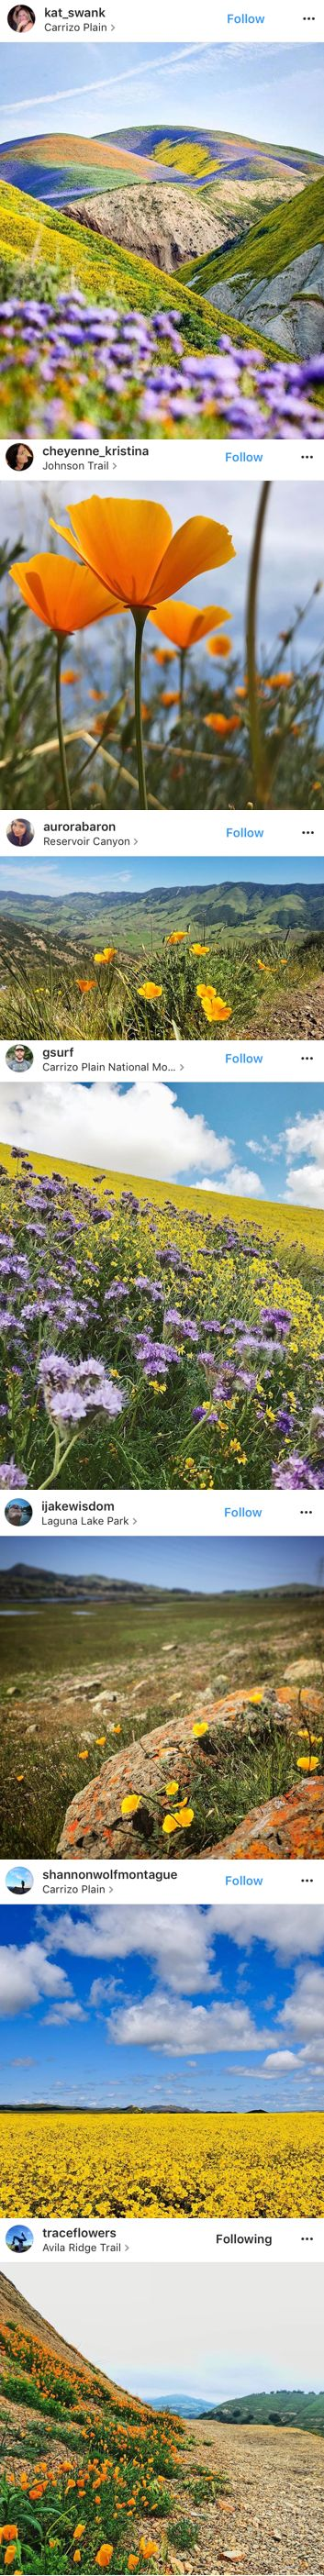 Super Bloom: Top Wildflower Spots around San Luis Obispo | San Luis Obispo California